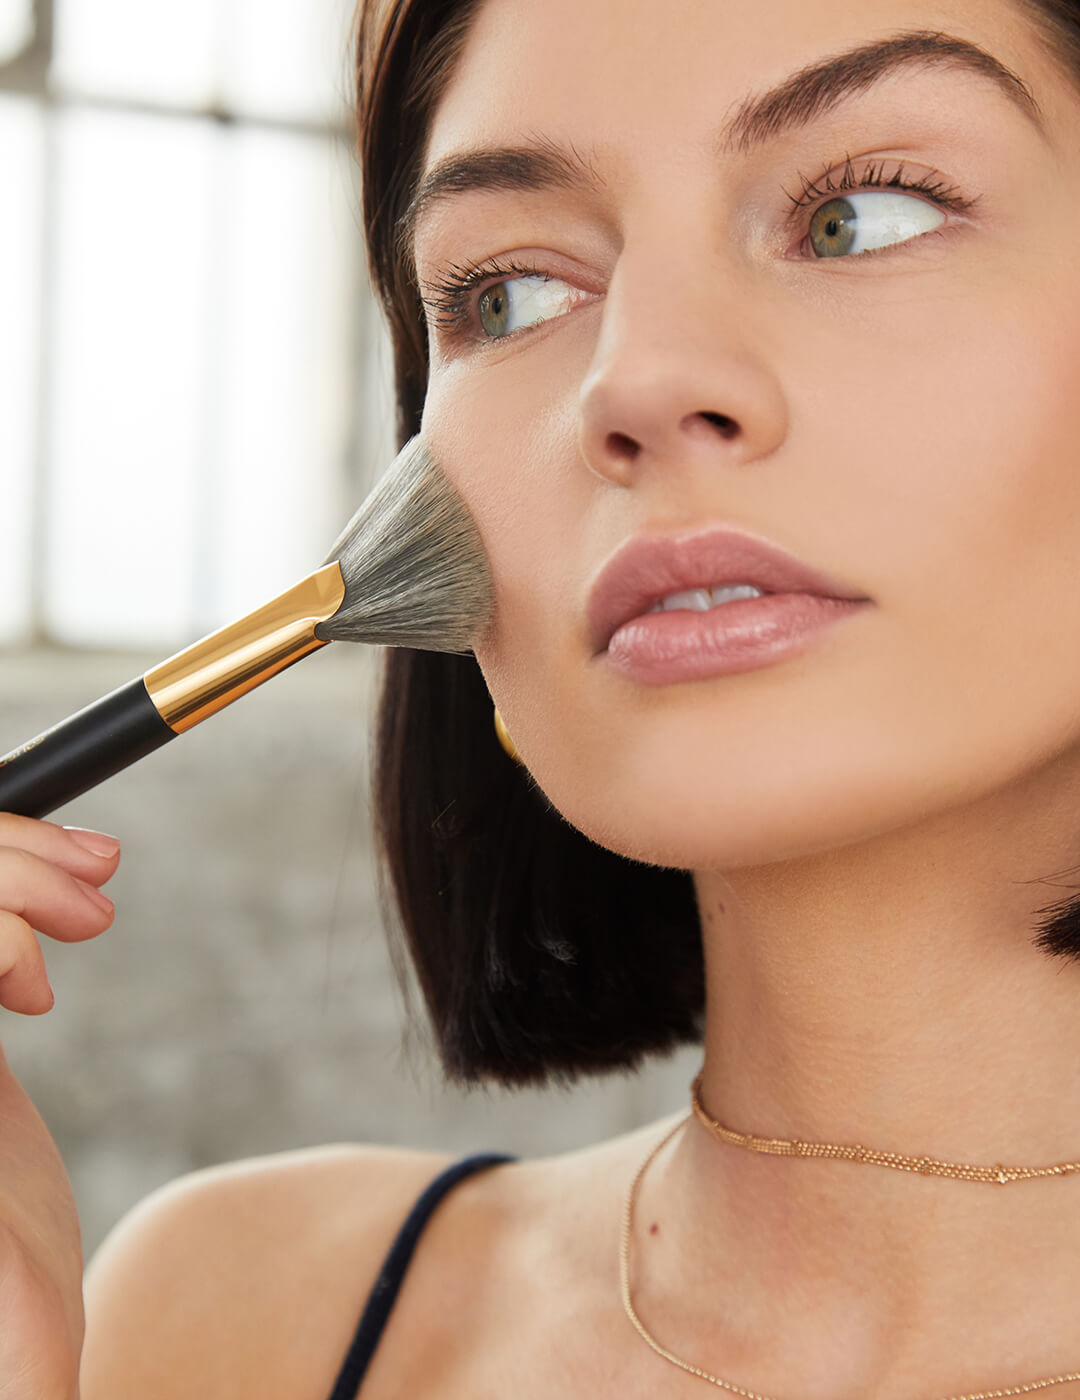 An image of a model touching her cheek with a makeup brush